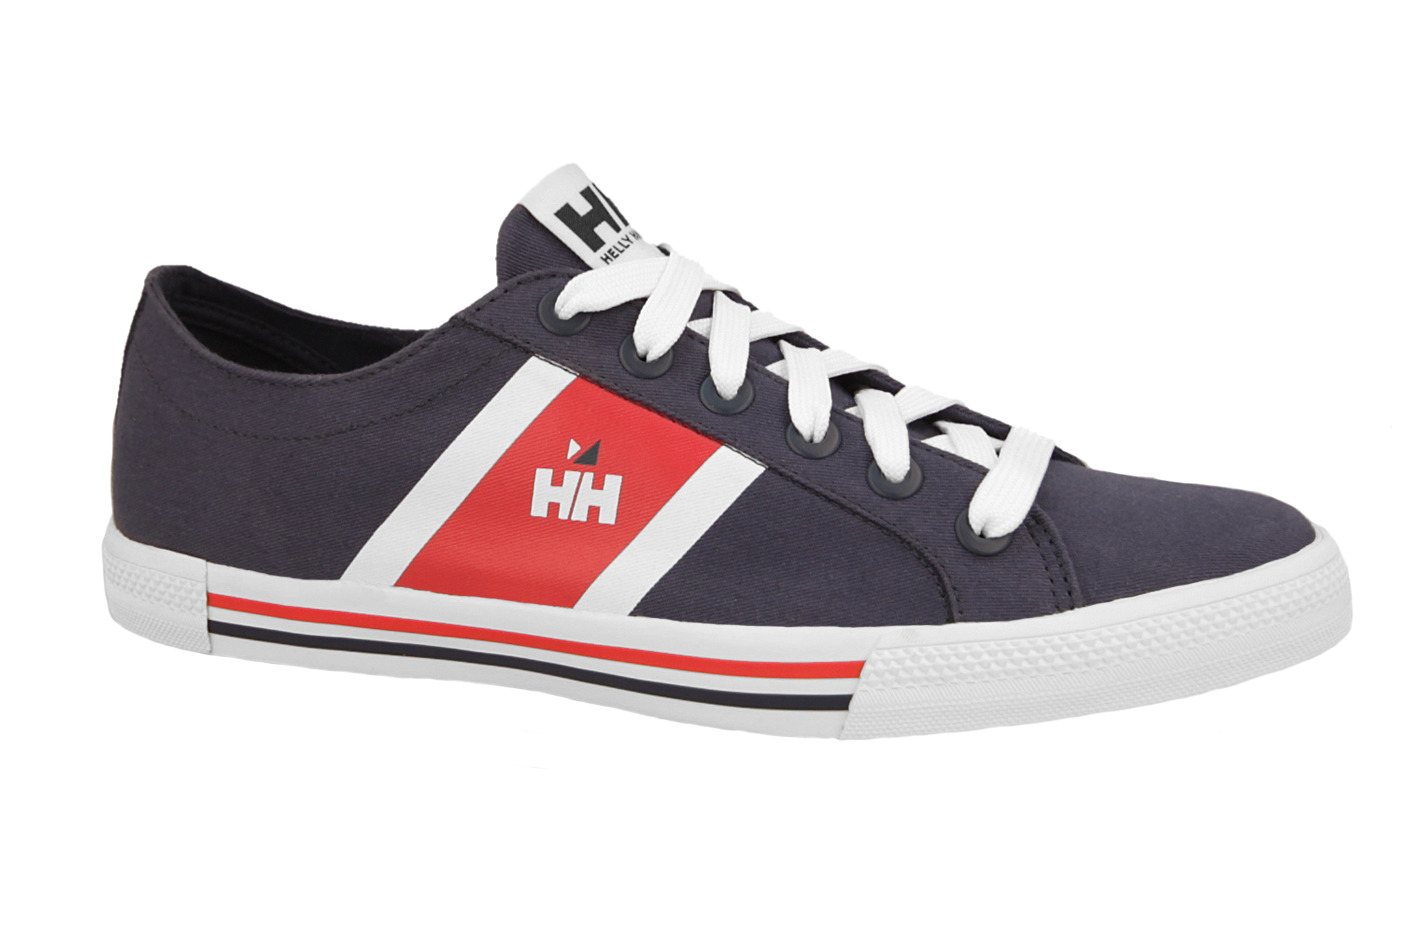 http://yessport.pl/pol_pl_BUTY-HELLY-HANSEN-BERGE-VIKING-LOW-10764-597-7603_2.jpg